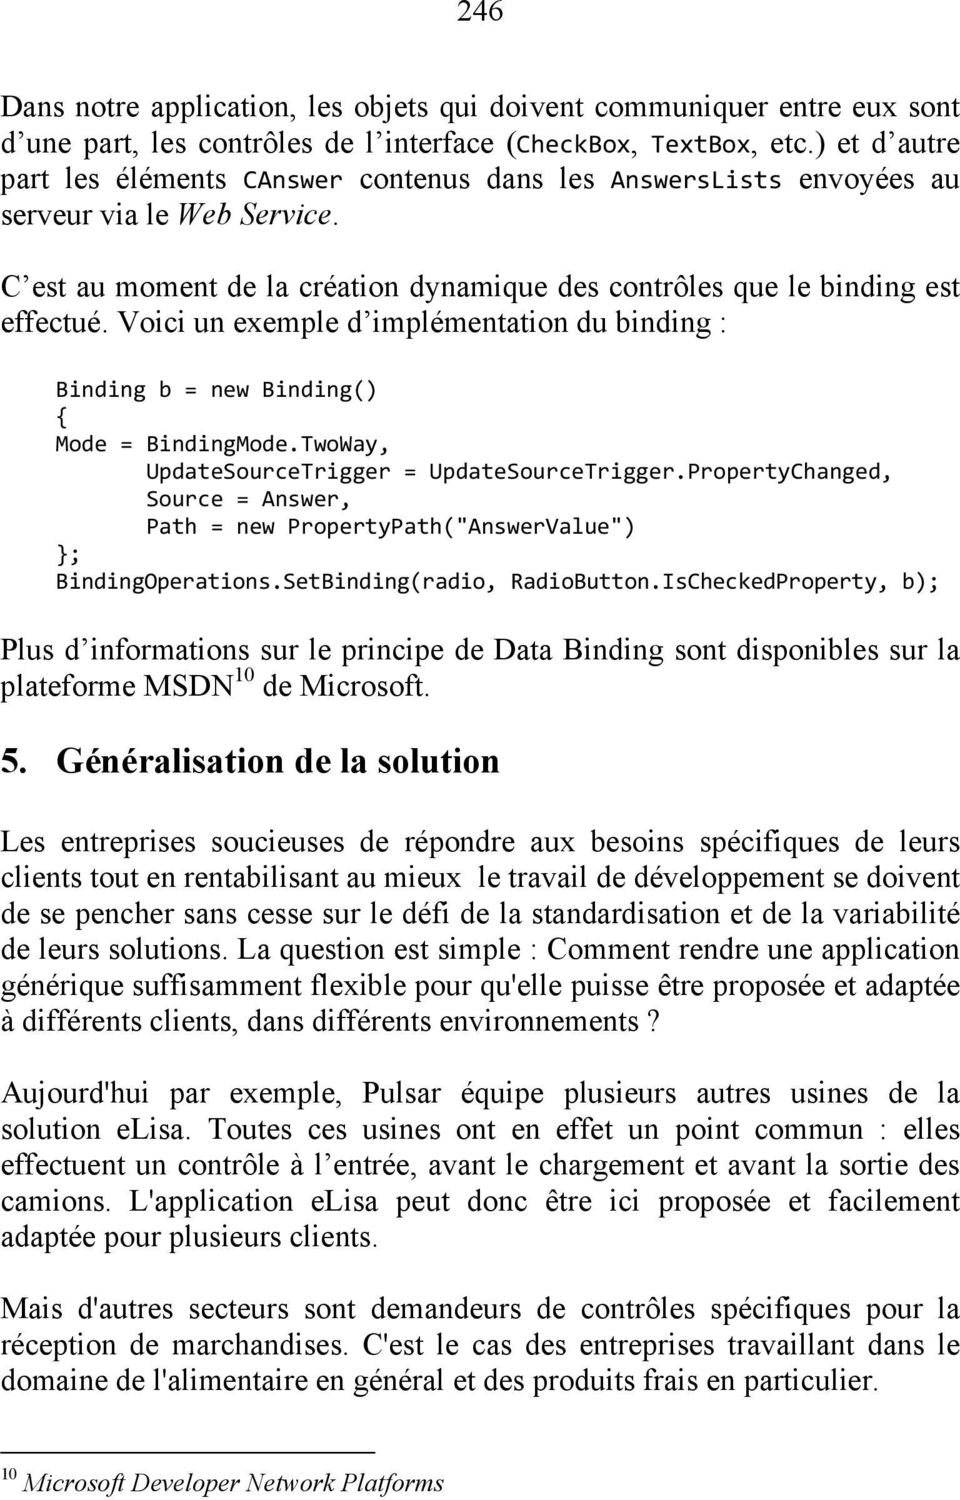 Voici un exemple d implémentation du binding : Binding b = new Binding() { Mode = BindingMode.TwoWay, UpdateSourceTrigger = UpdateSourceTrigger.